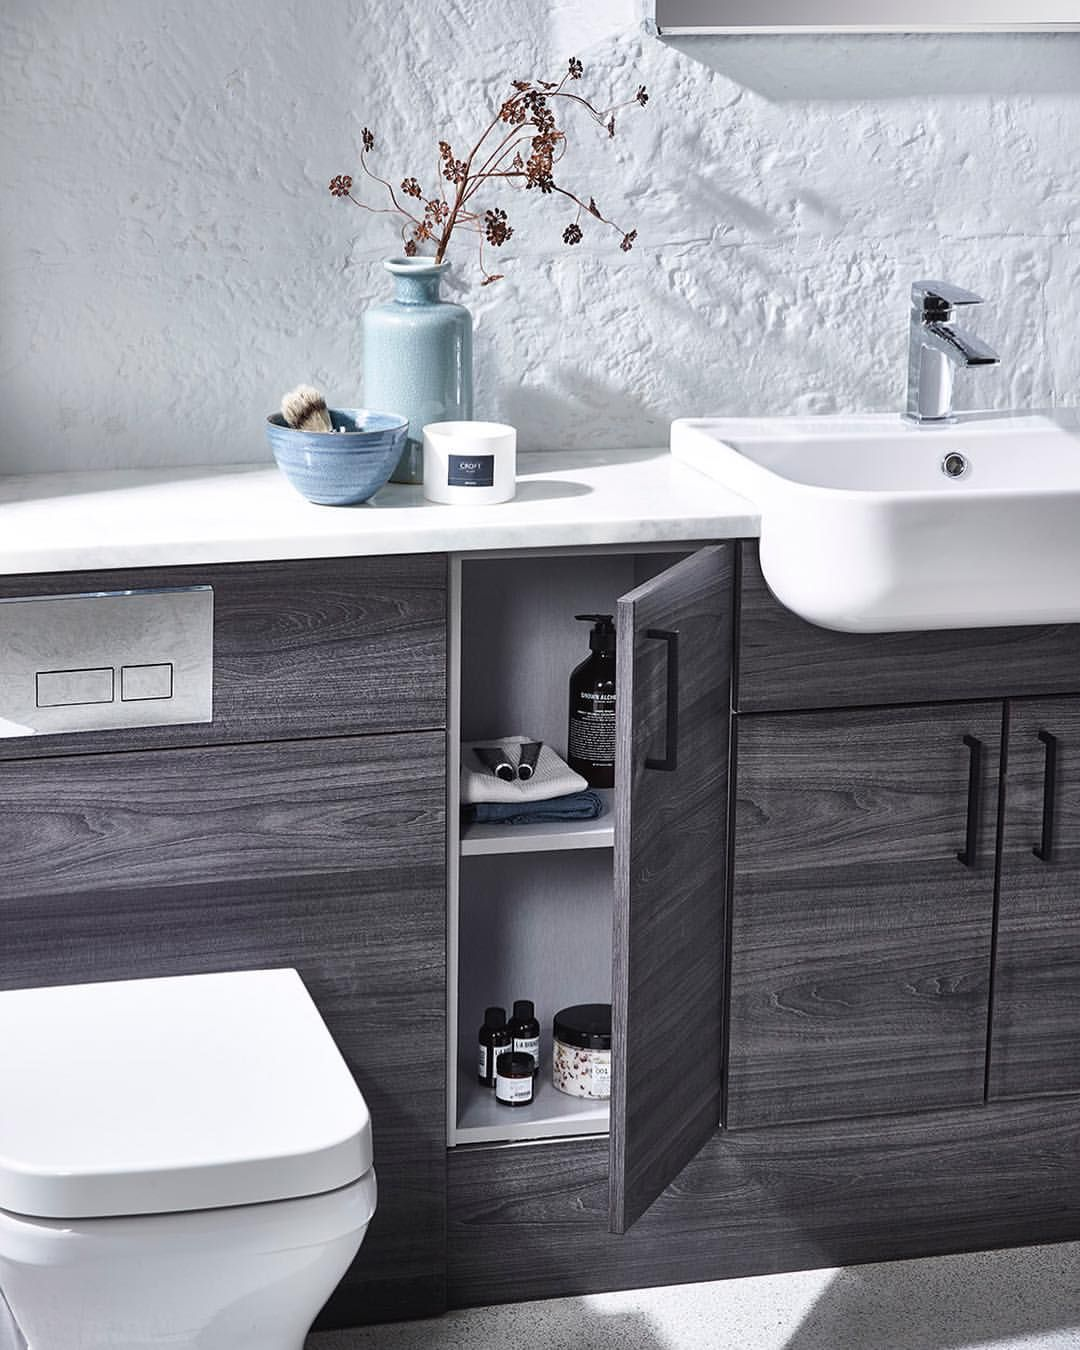 Vanity Units Are A Great Way To Keep All Your Bathroom Clutter Out Of Sight Tecaztrends Bathr Fitted Bathroom Bathroom Furniture Vanity Bathroom Furniture